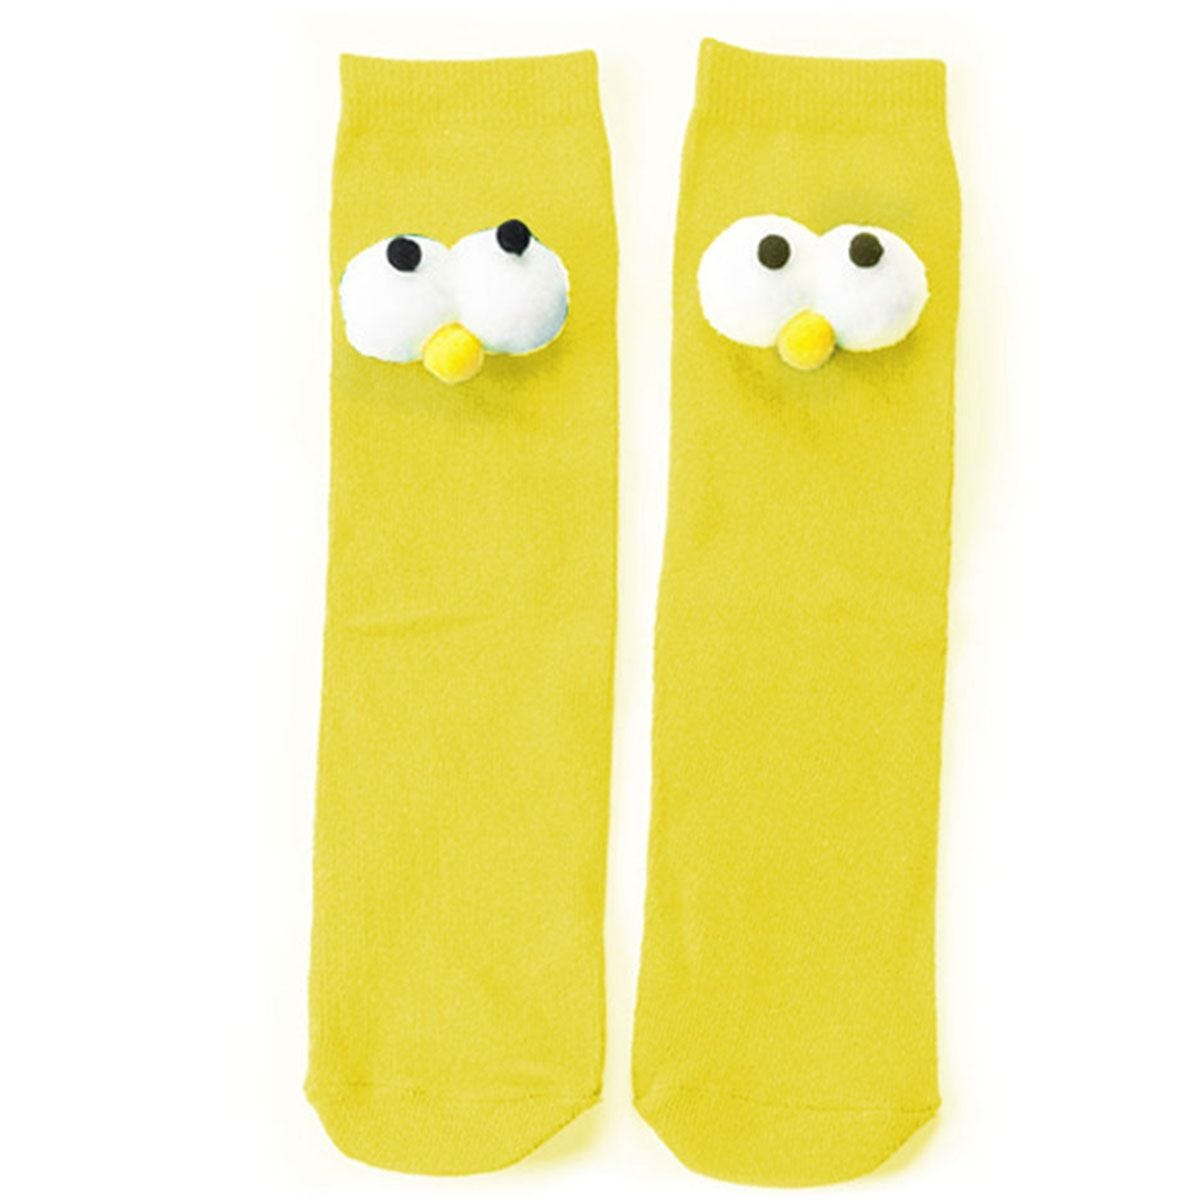 Flo Knee High Socks With Large Big Eyes - Yellow